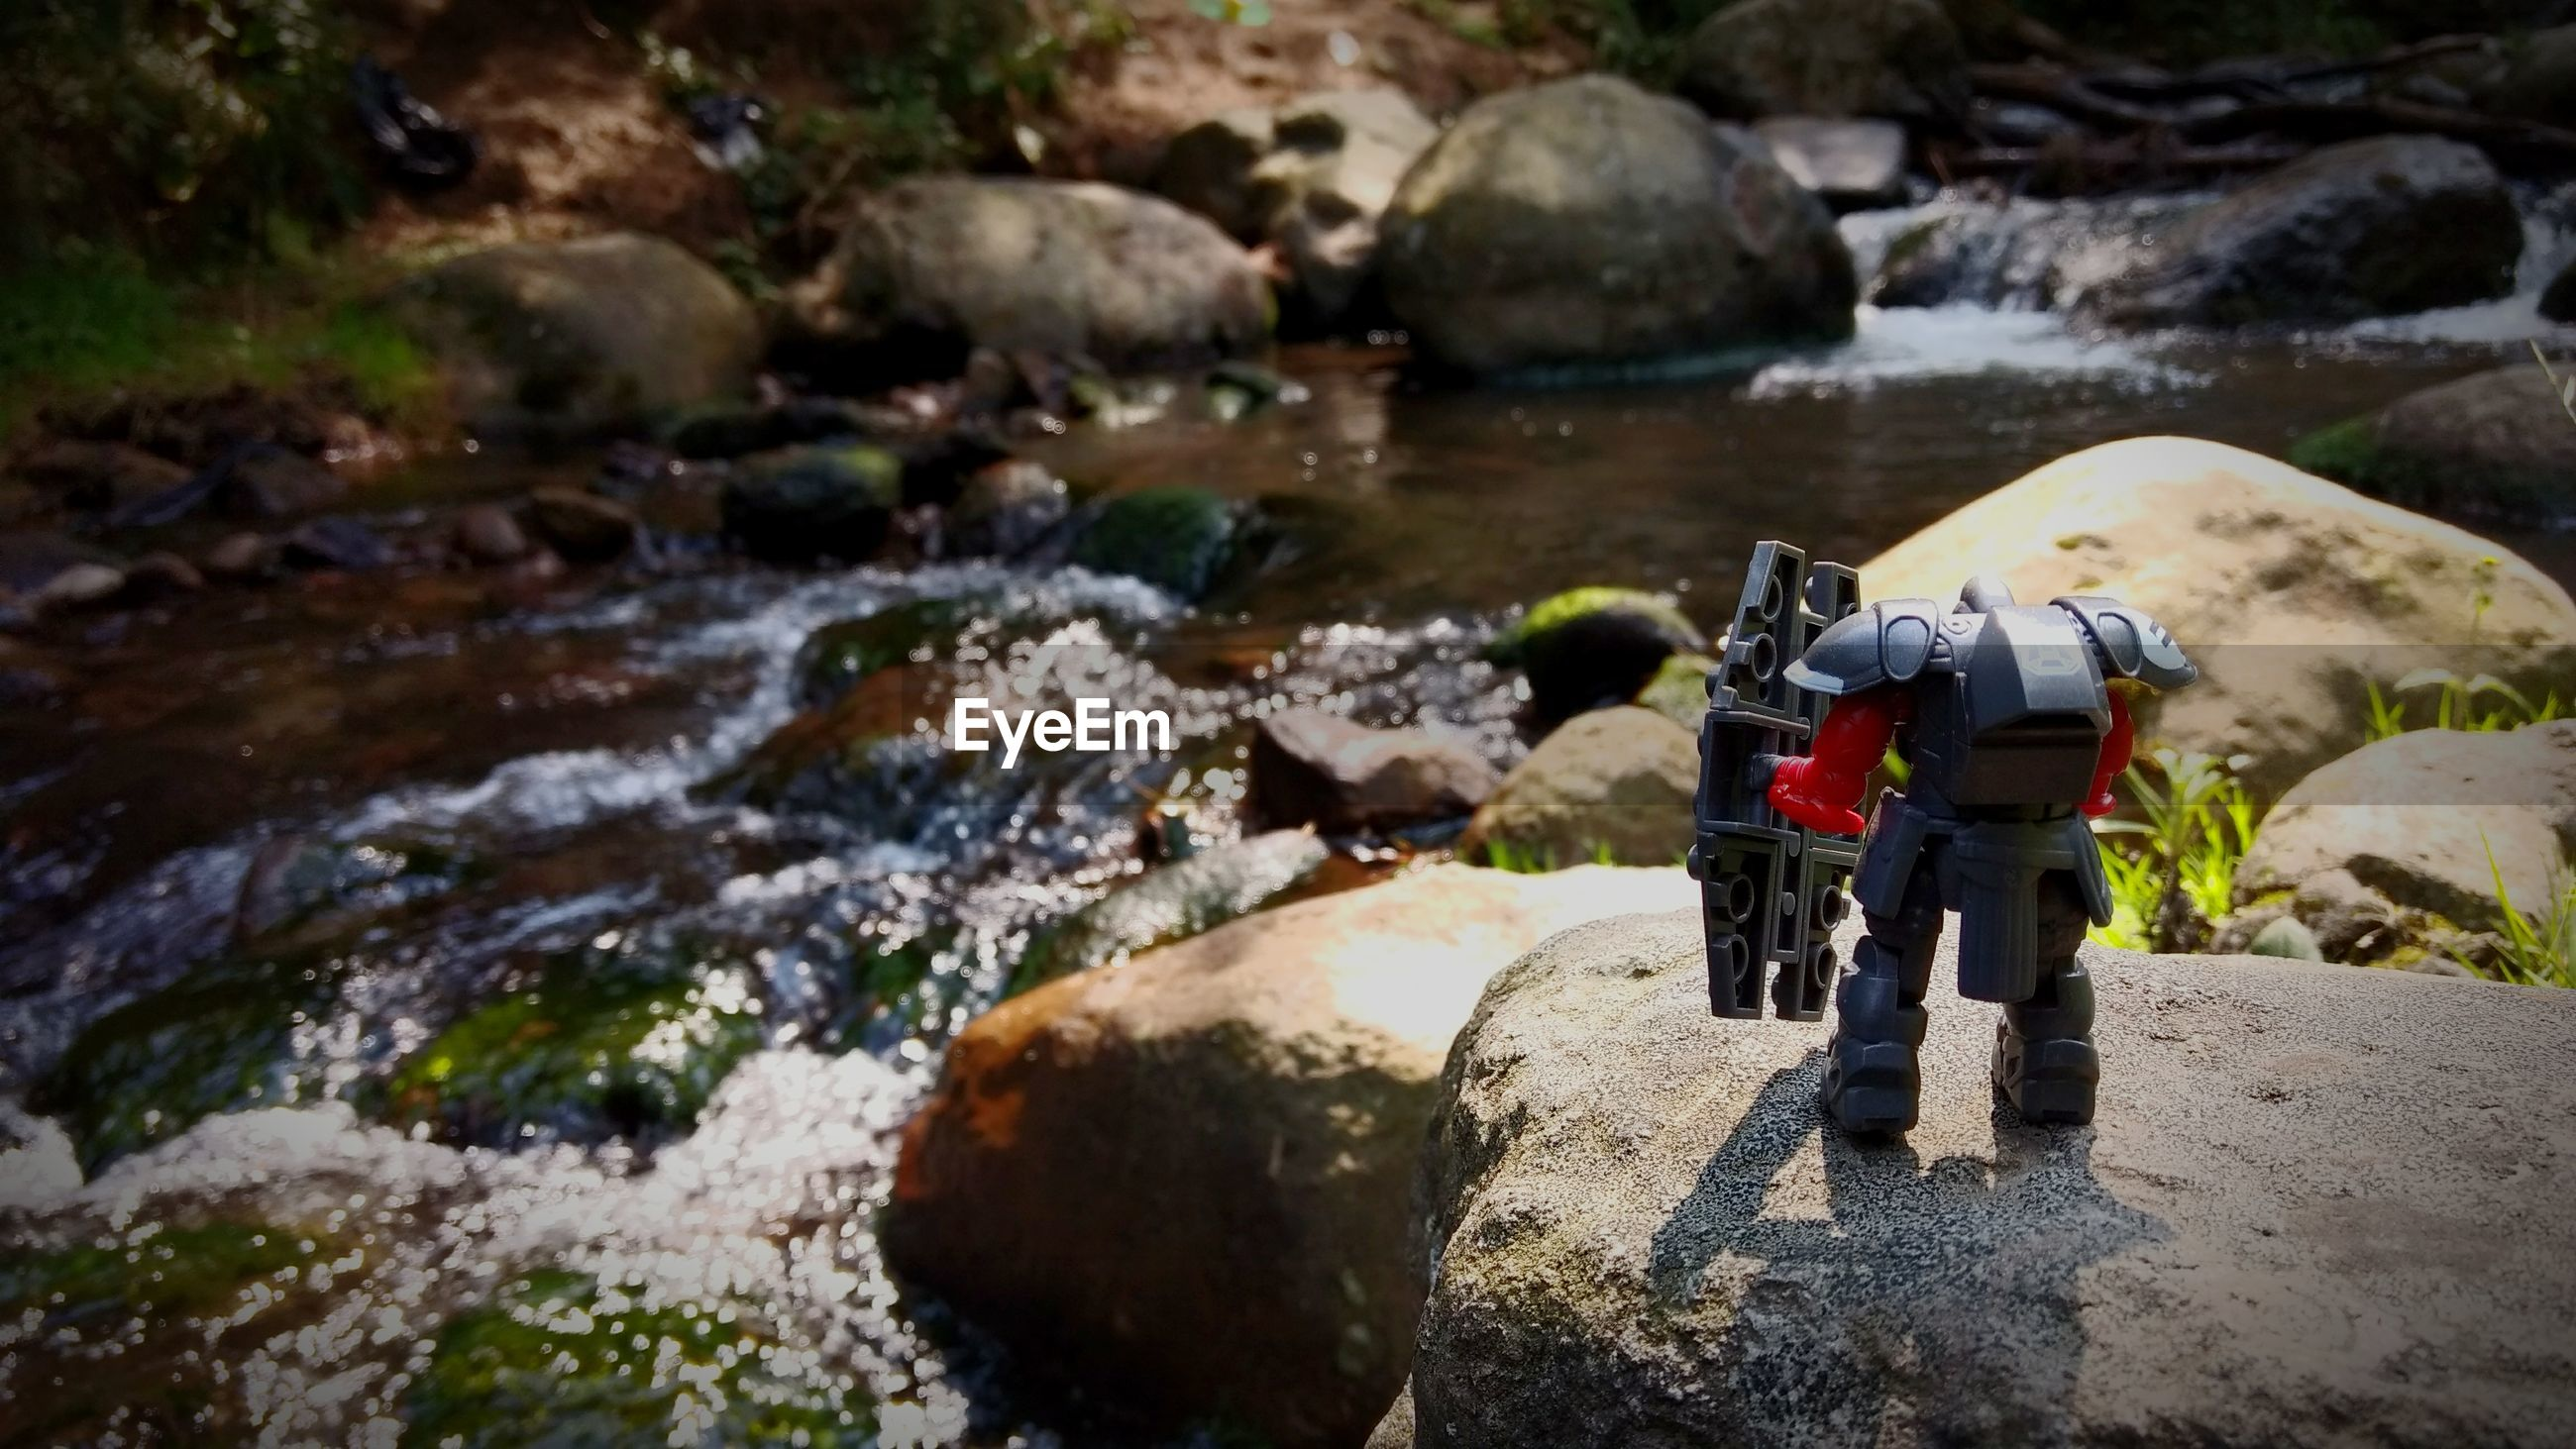 Close-up of robot toy on rock against stream